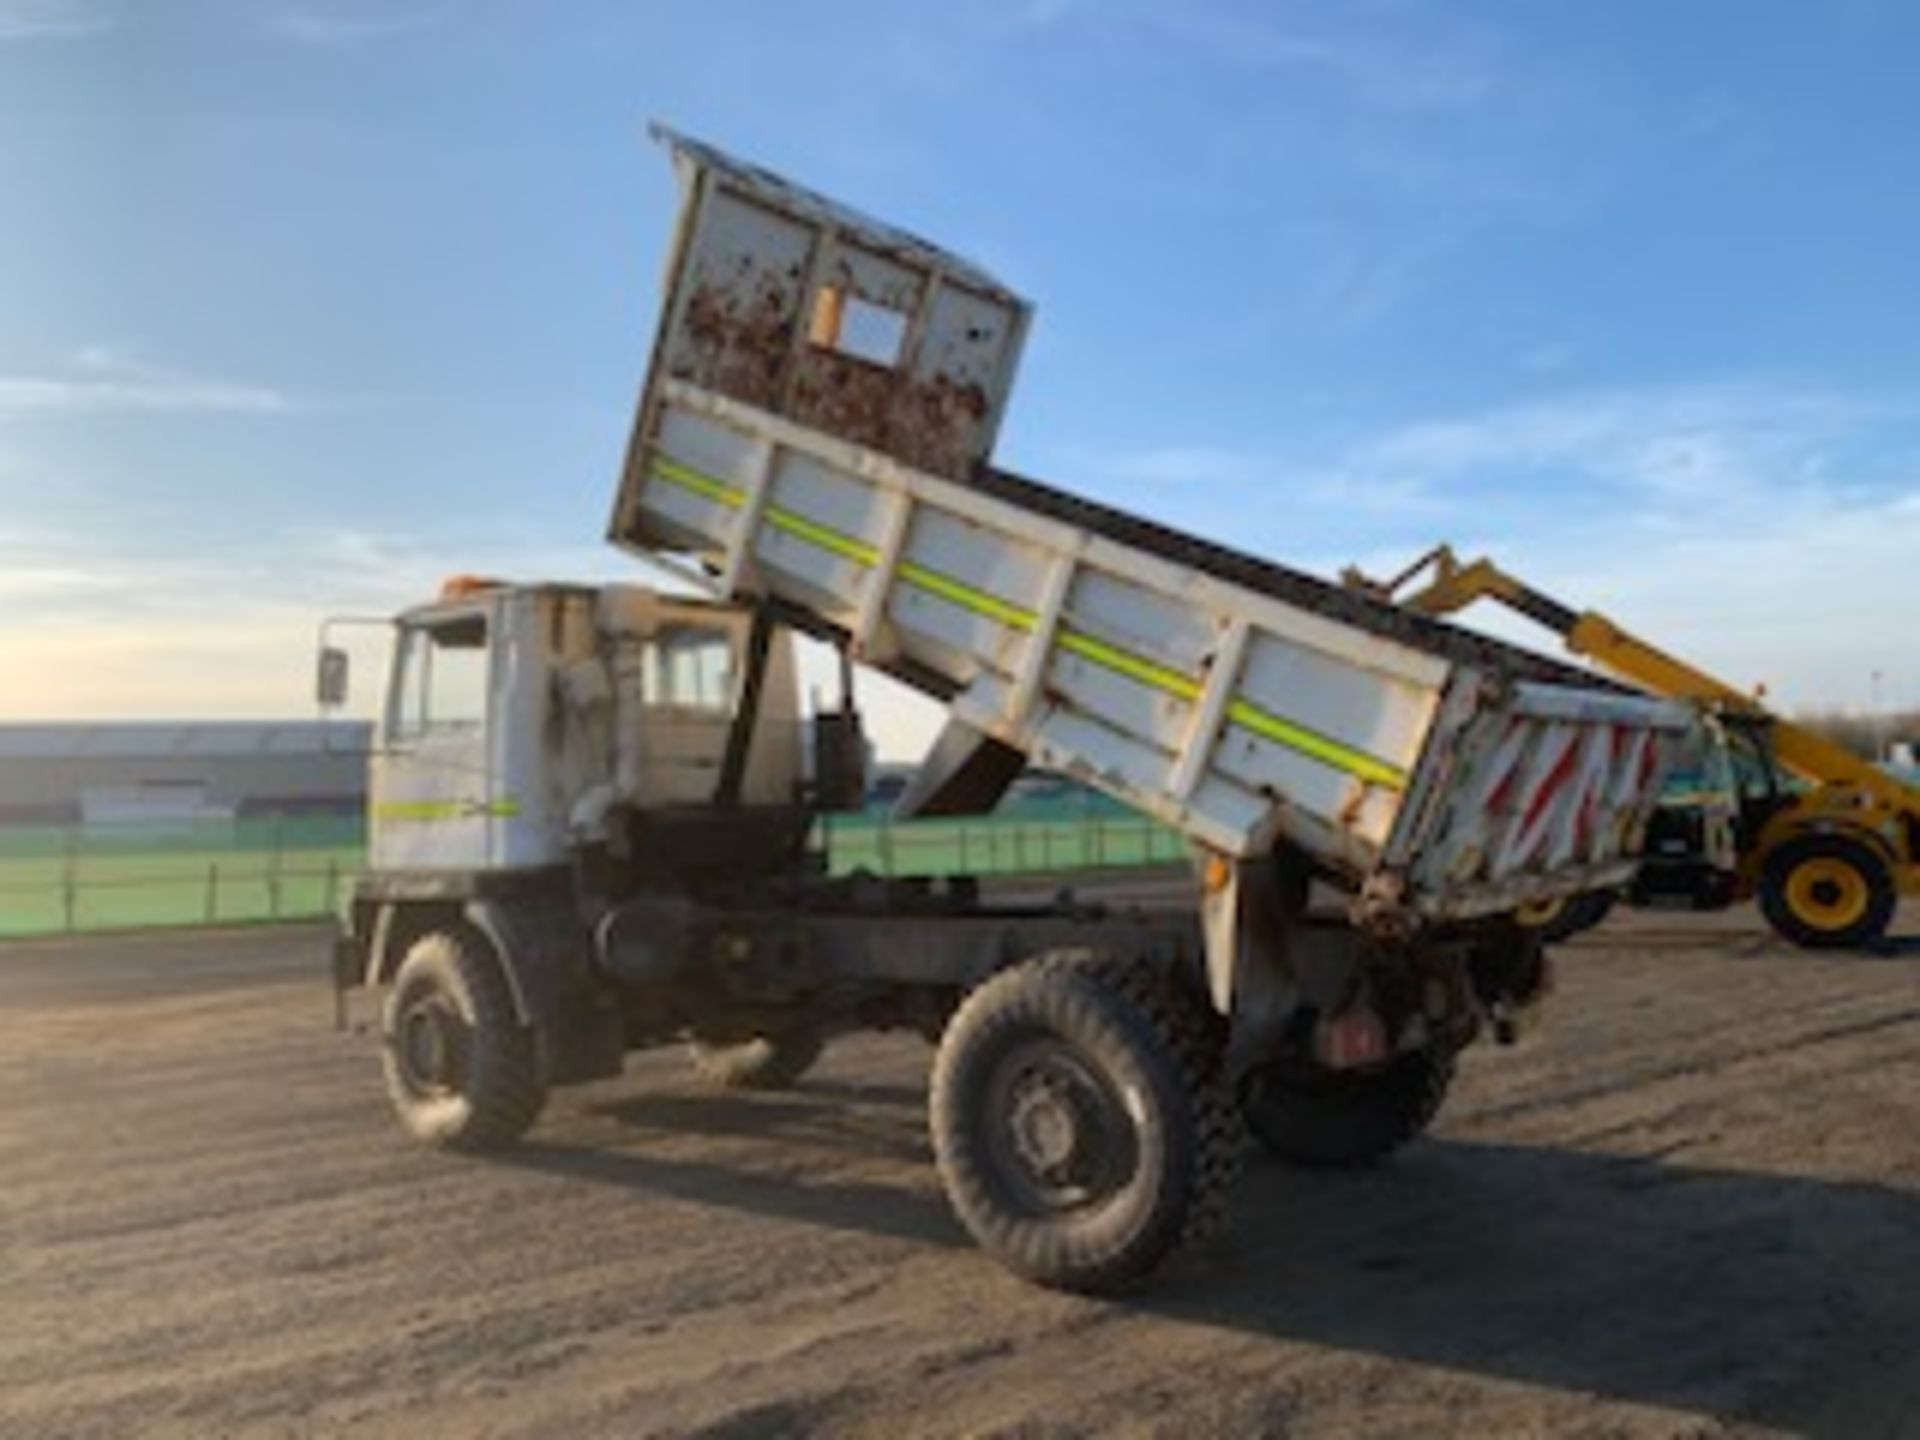 Lot 1711 - BEDFORD TM 4x4 TIPPER C/W REAR HITCH, SNOW PLOUGH BRACKET WITH HYDRAULICS 30,000KM (NOT VERIFIED) RE